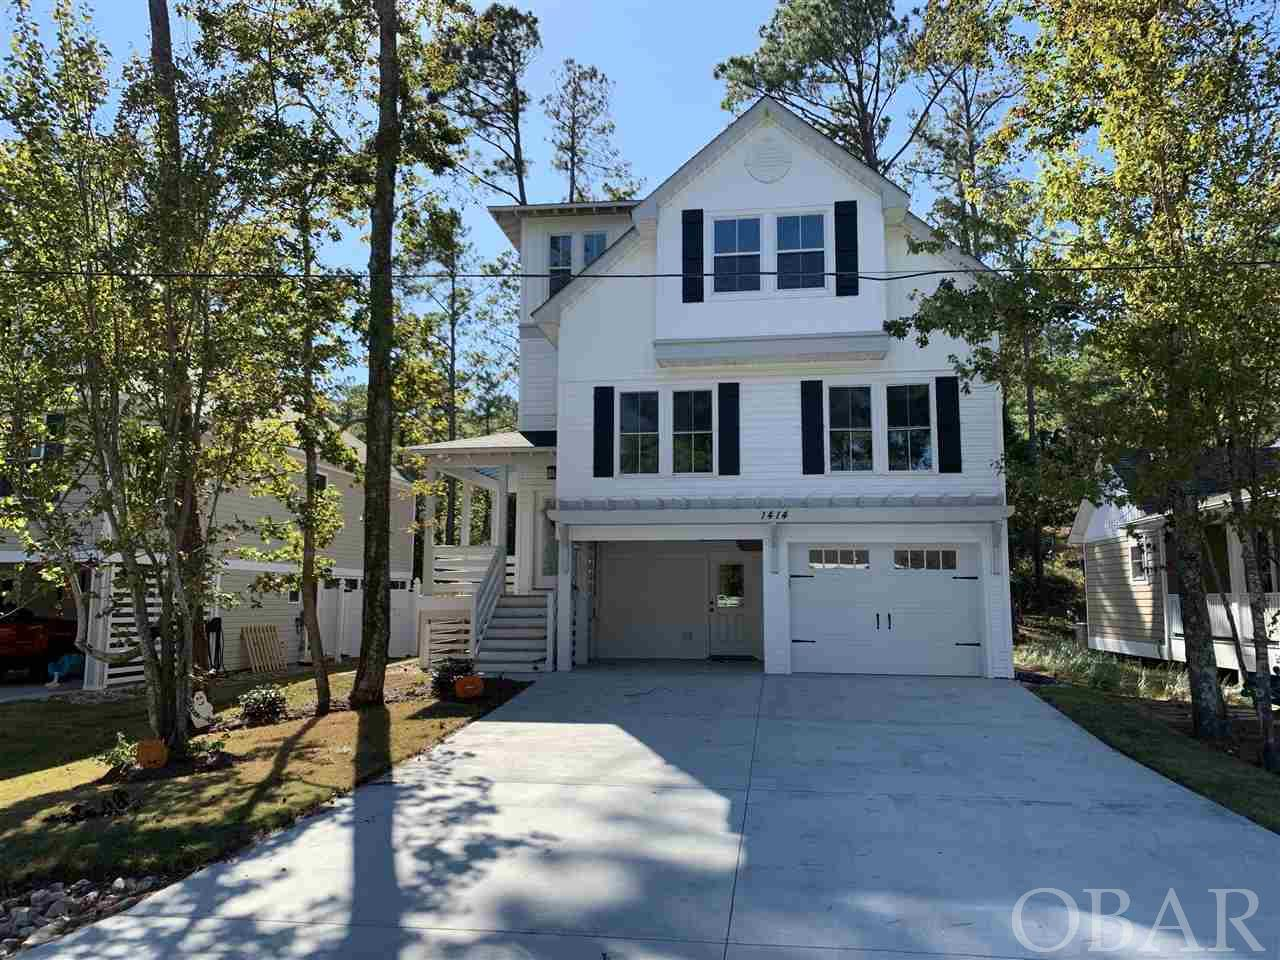 1414 Hill Street, Kill Devil Hills, NC 27948, 3 Bedrooms Bedrooms, ,3 BathroomsBathrooms,Residential,For sale,Hill Street,105112